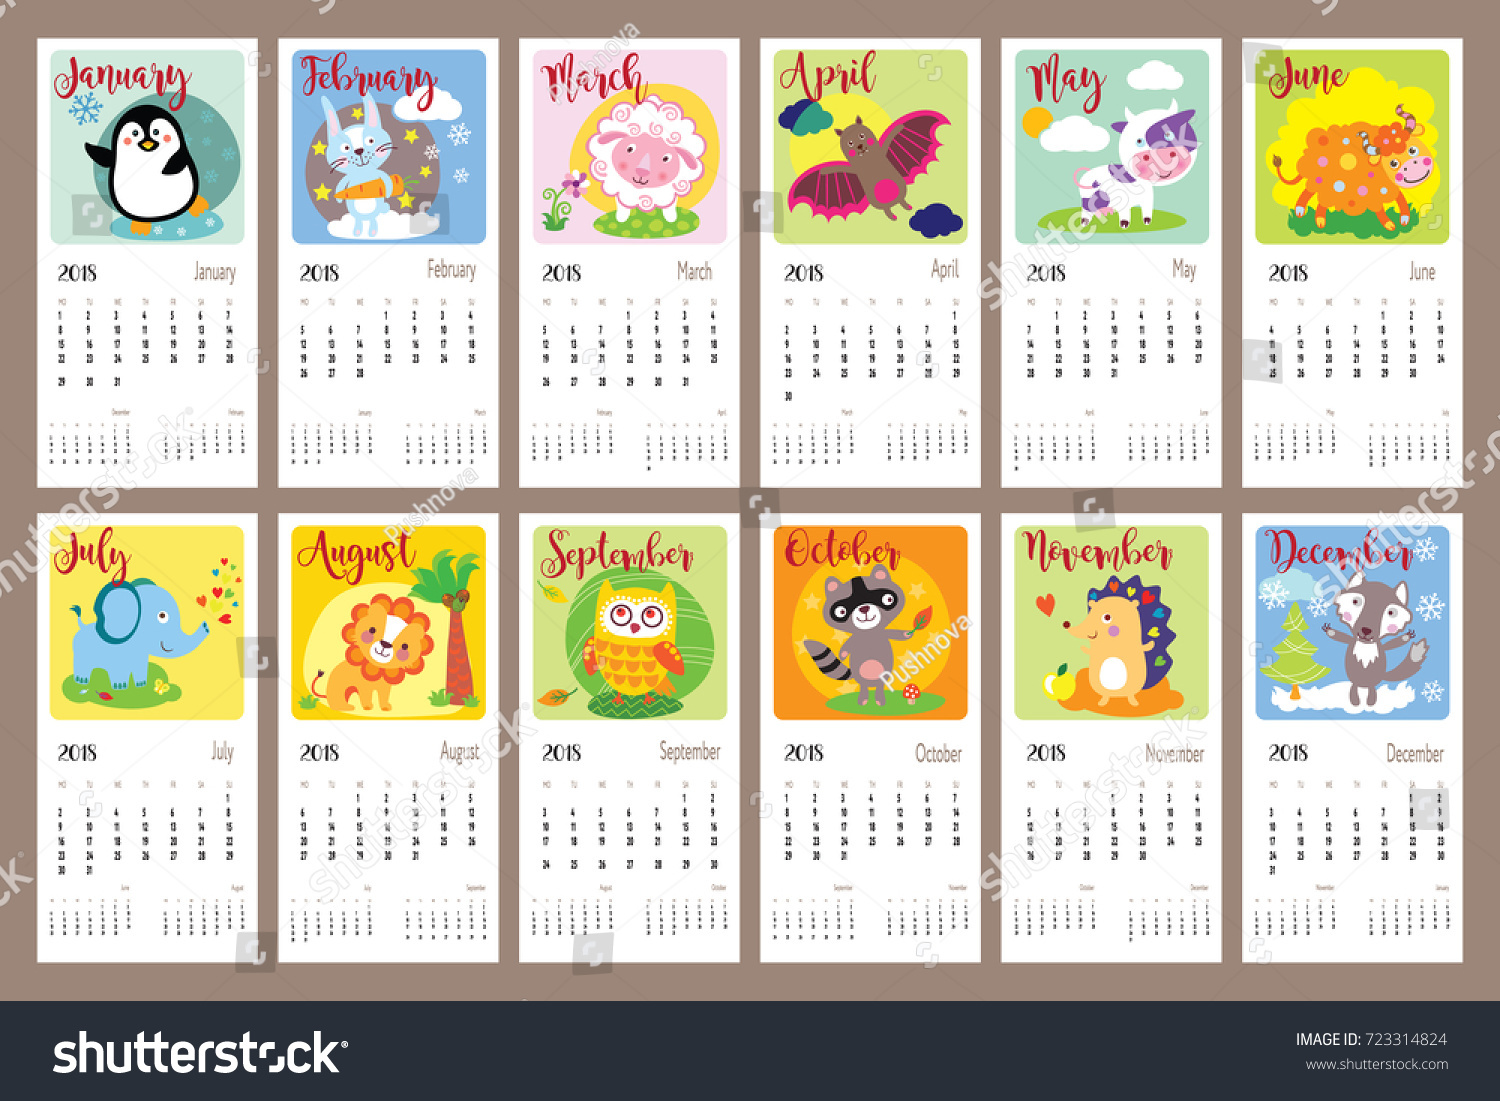 Cute Animals Calendar 2018 Year Cute Stock Vector 723314824